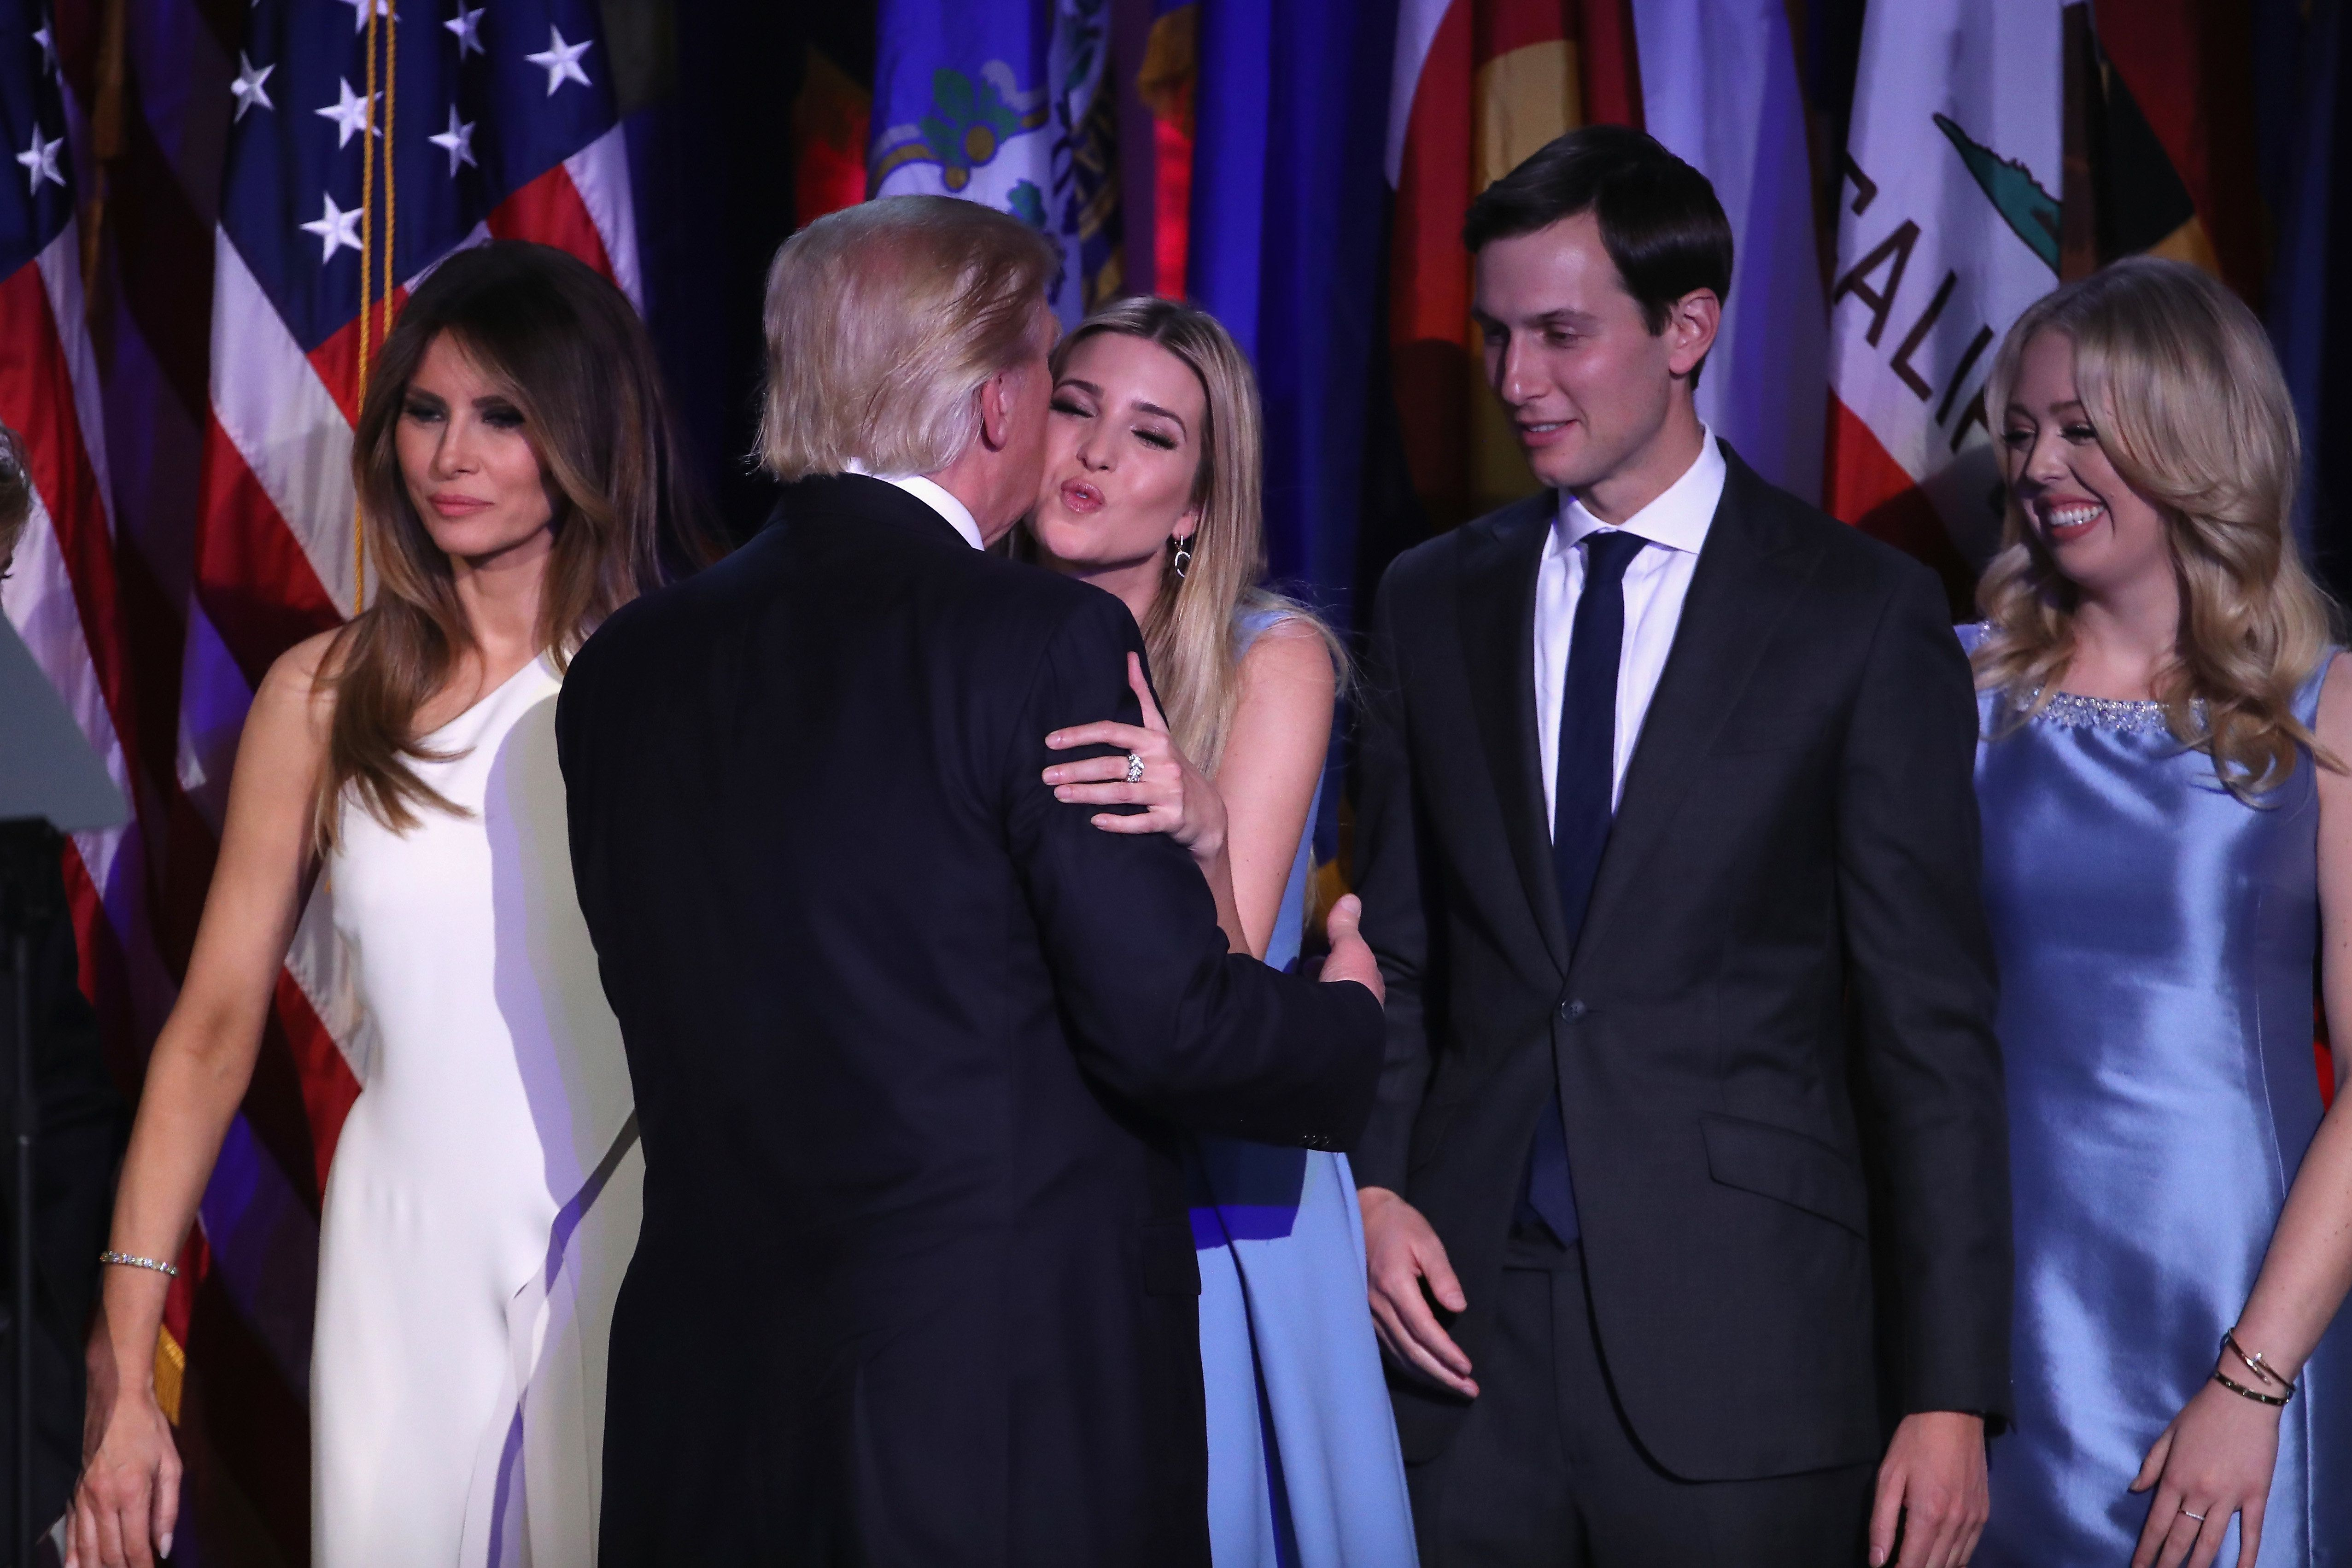 NEW YORK, NY - NOVEMBER 09:  Republican president-elect Donald Trump and his daughter Ivanka Trump embrace as his wife Melania Trump (L), Jared Kushner (2nd-R) ad Tiffany Trump look on after delivering his acceptance speech at the New York Hilton Midtown in the early morning hours of November 9, 2016 in New York City. Donald Trump defeated Democratic presidential nominee Hillary Clinton to become the 45th president of the United States.  (Photo by Mark Wilson/Getty Images)